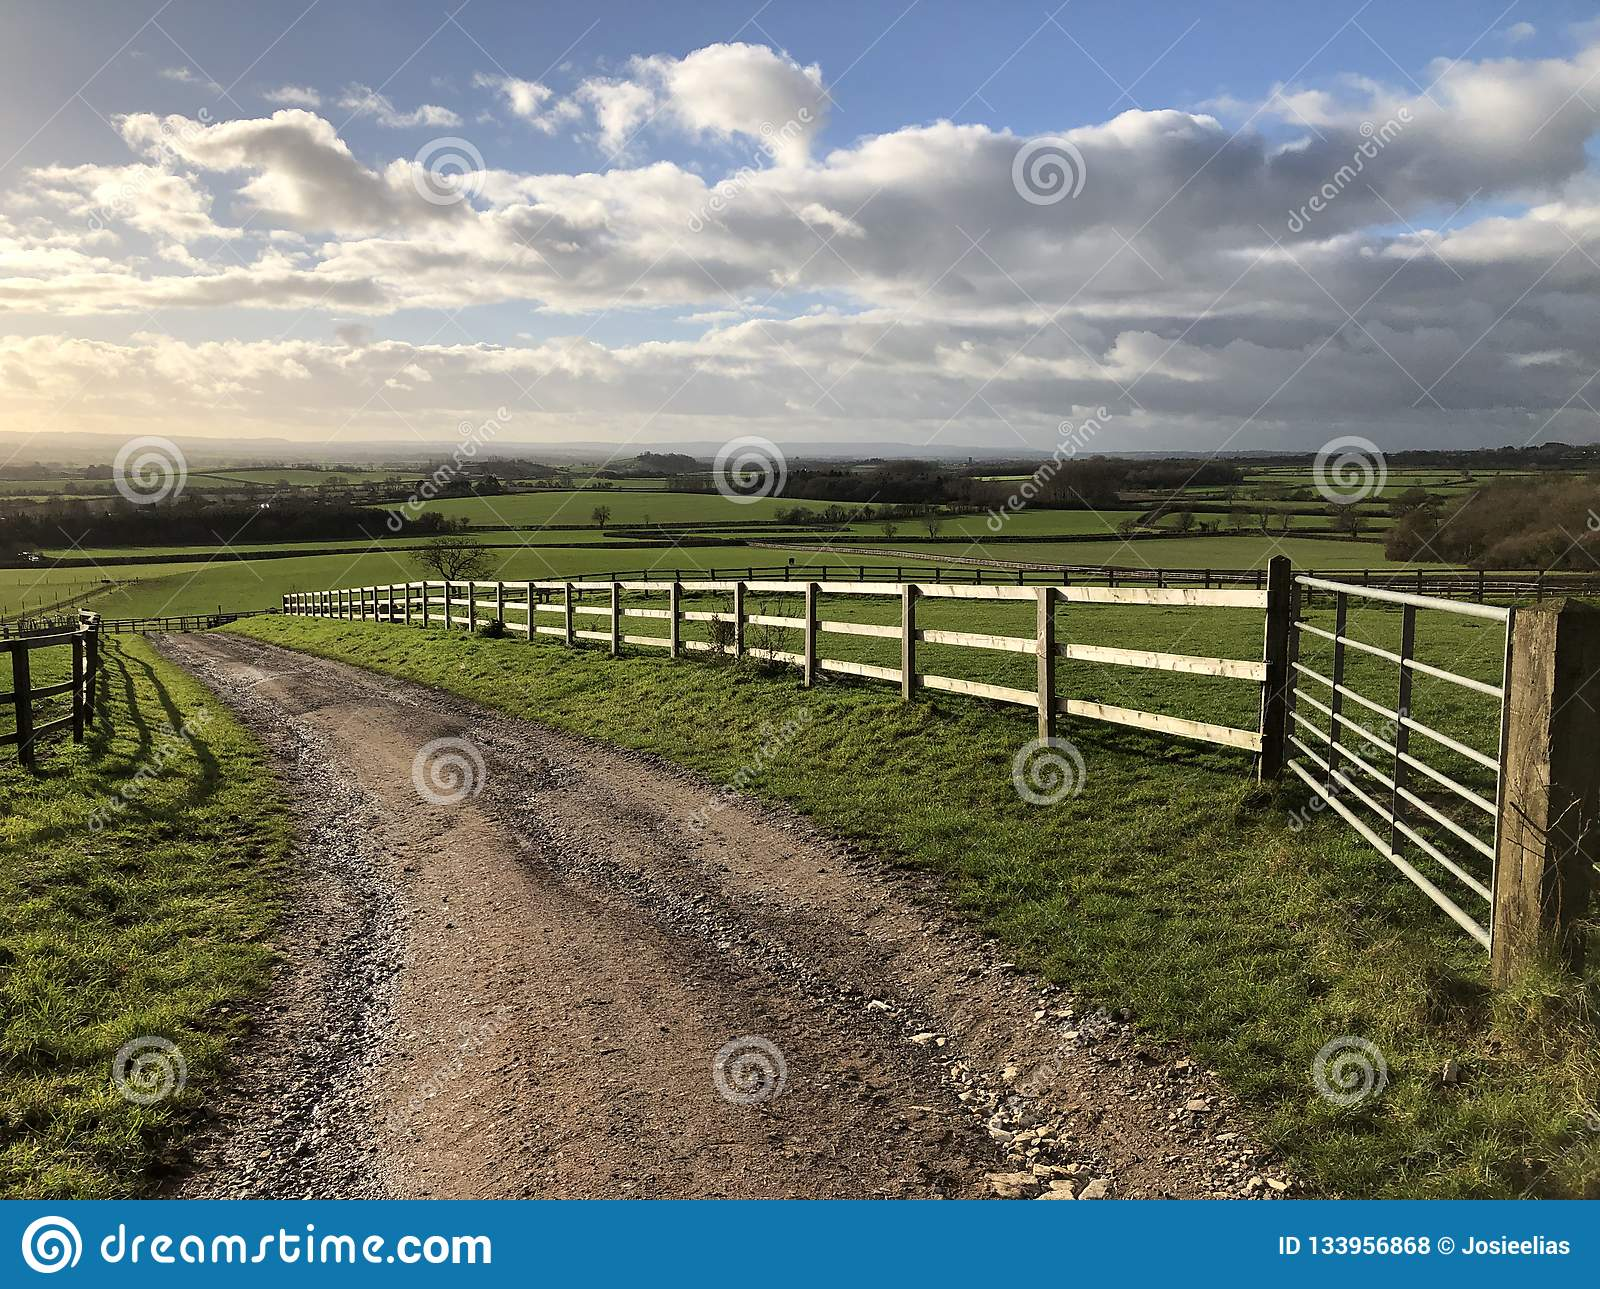 Track through bright green fields in a rural landscape, England